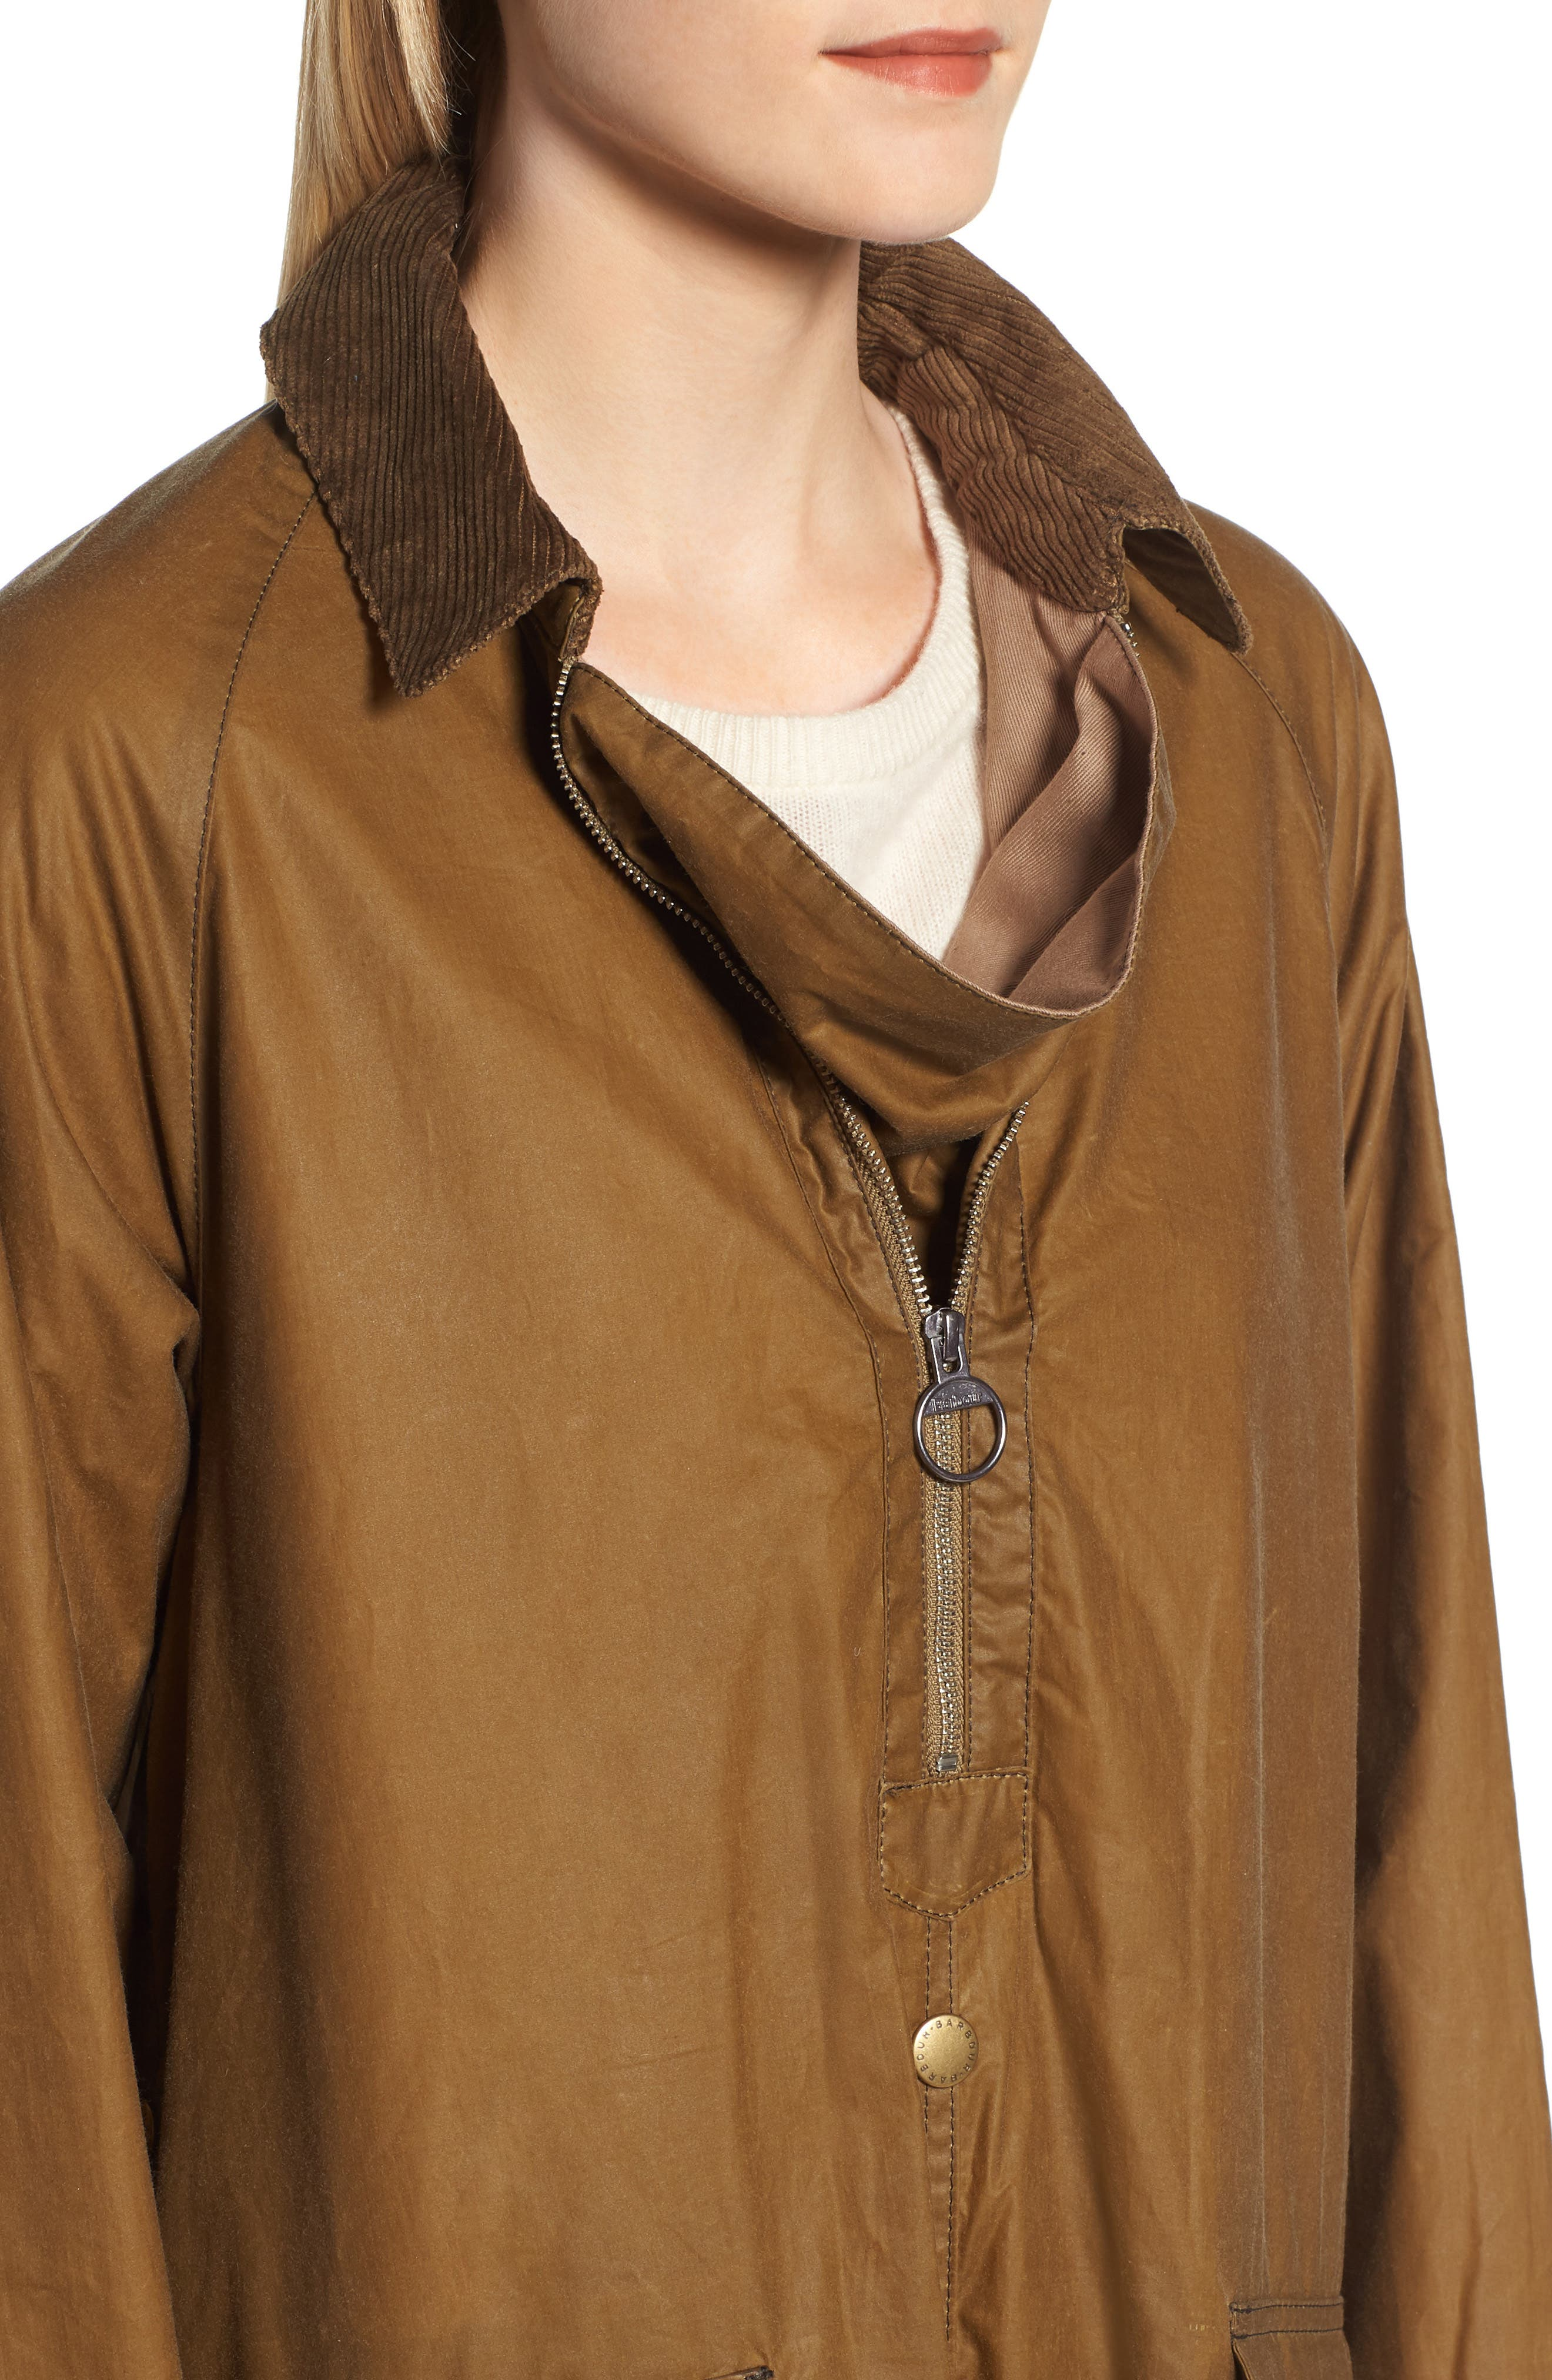 Margaret Howell Water Resistant Waxed Cotton Poncho,                             Alternate thumbnail 4, color,                             SAND